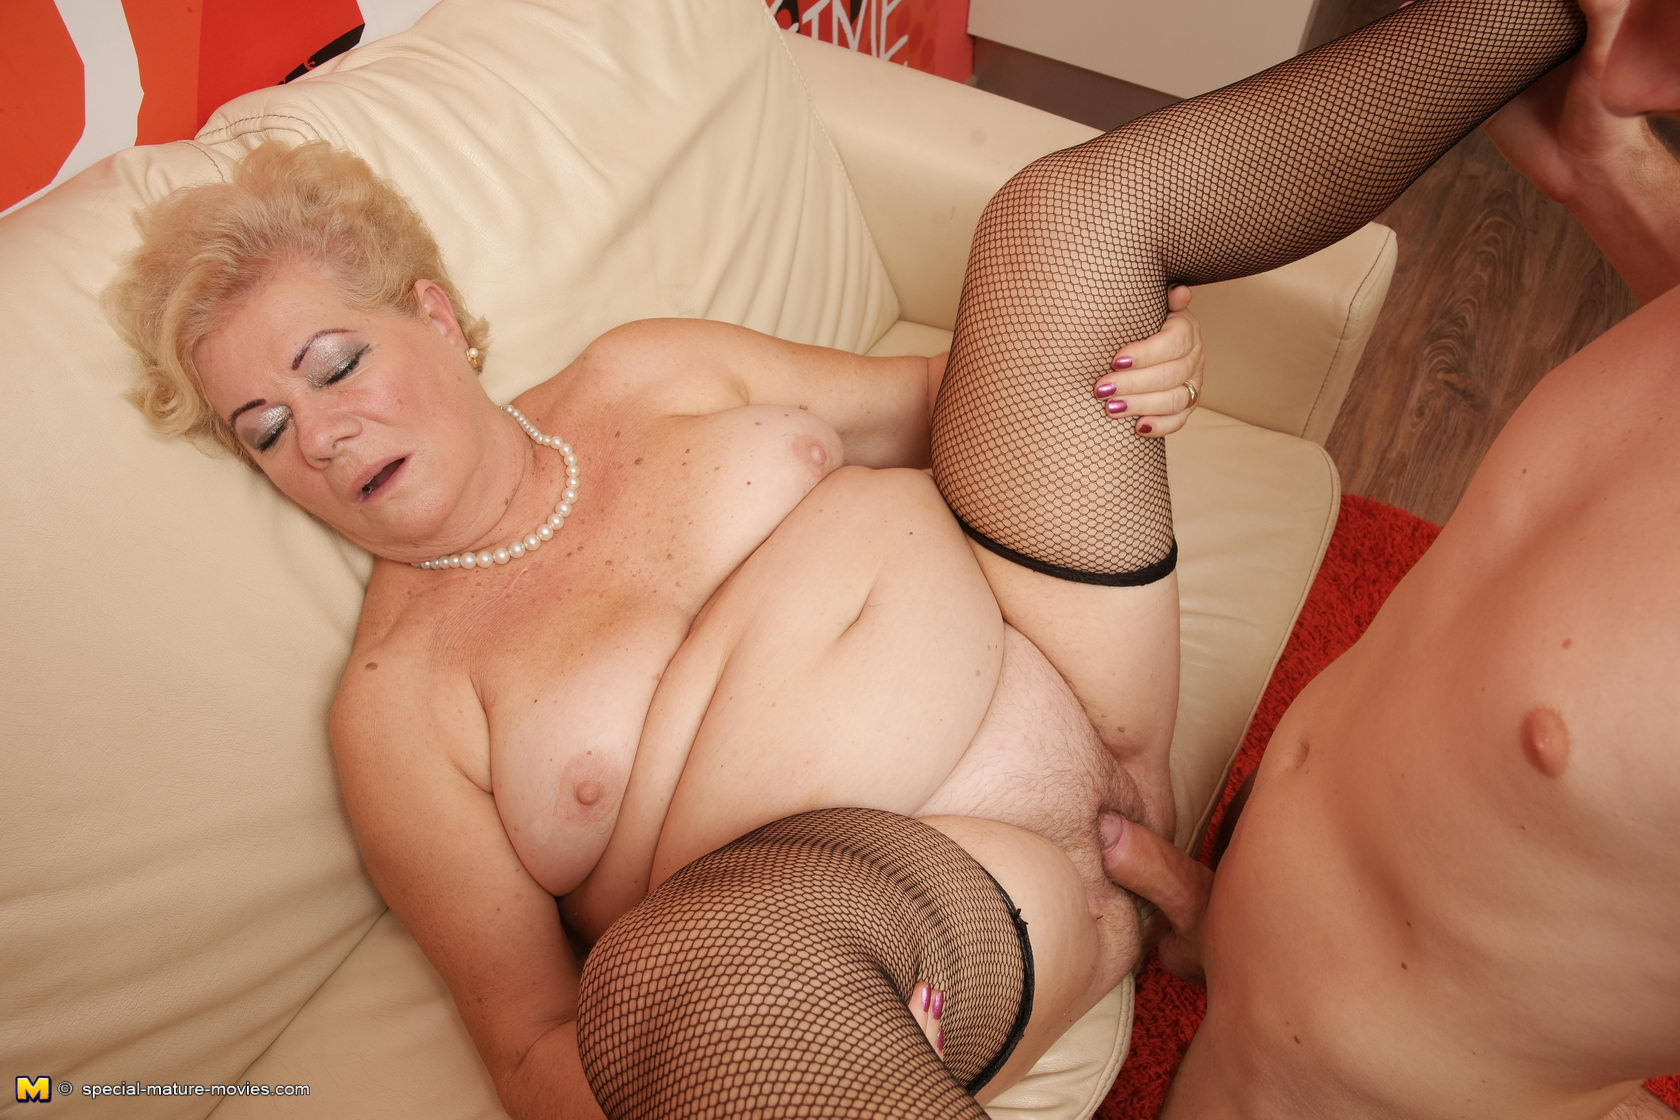 old granny anal sex photo № 99851